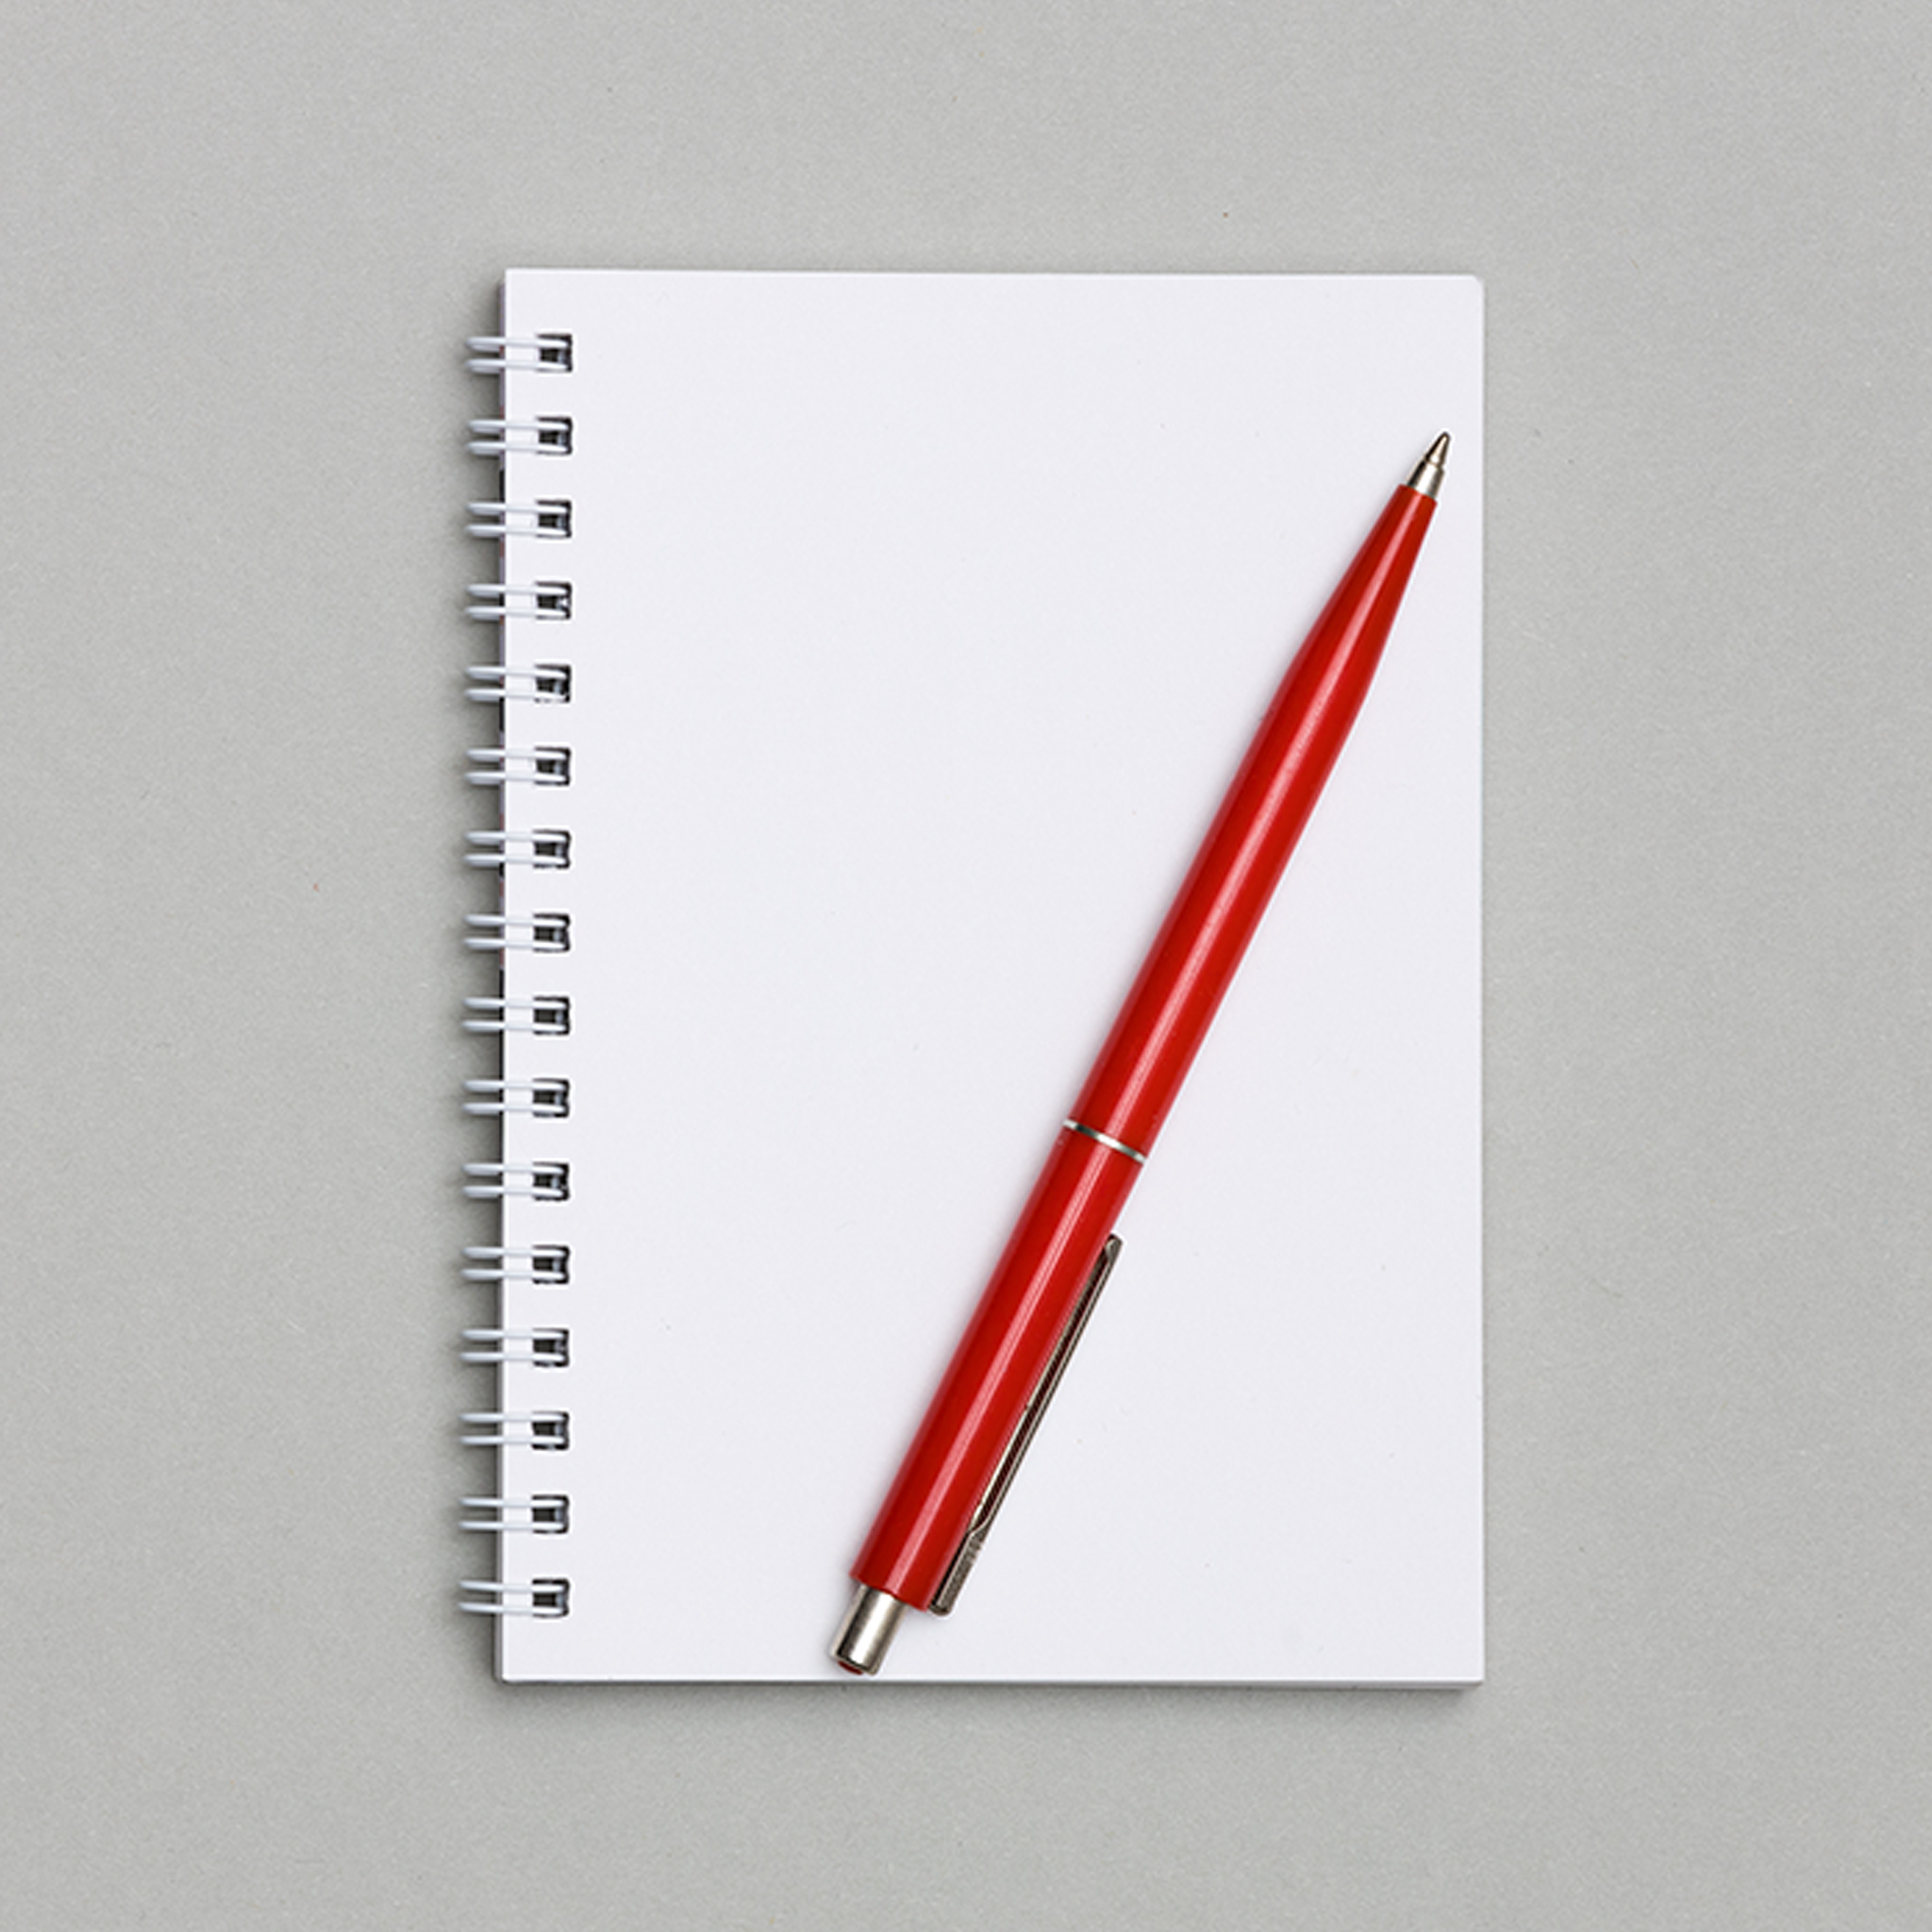 Chanel Cleeton's Magic Red Pen: Writing and Revision Tips